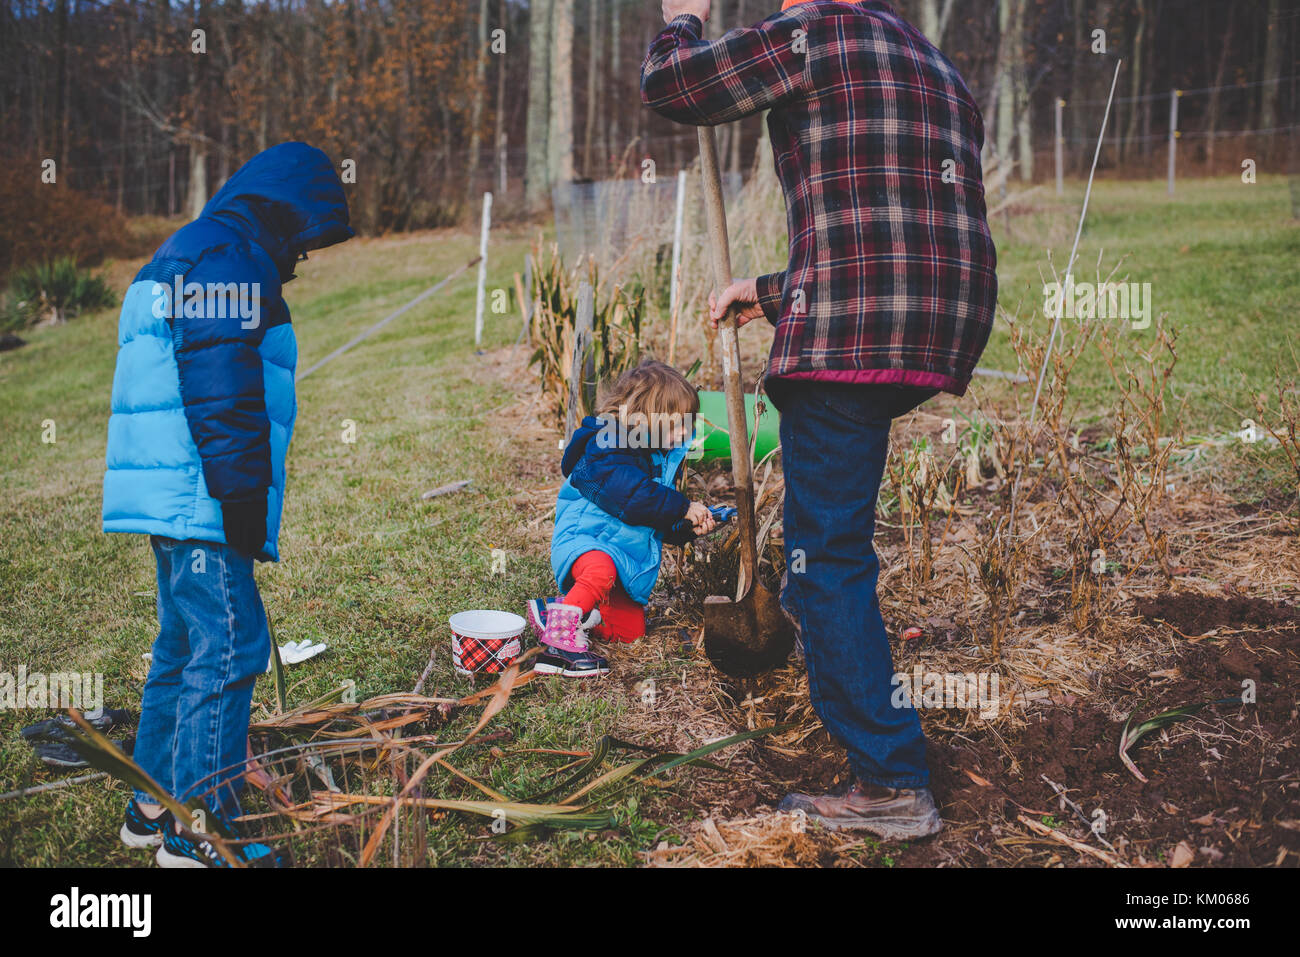 Children helping their grandfather dig in a garden during the winter months - Stock Image